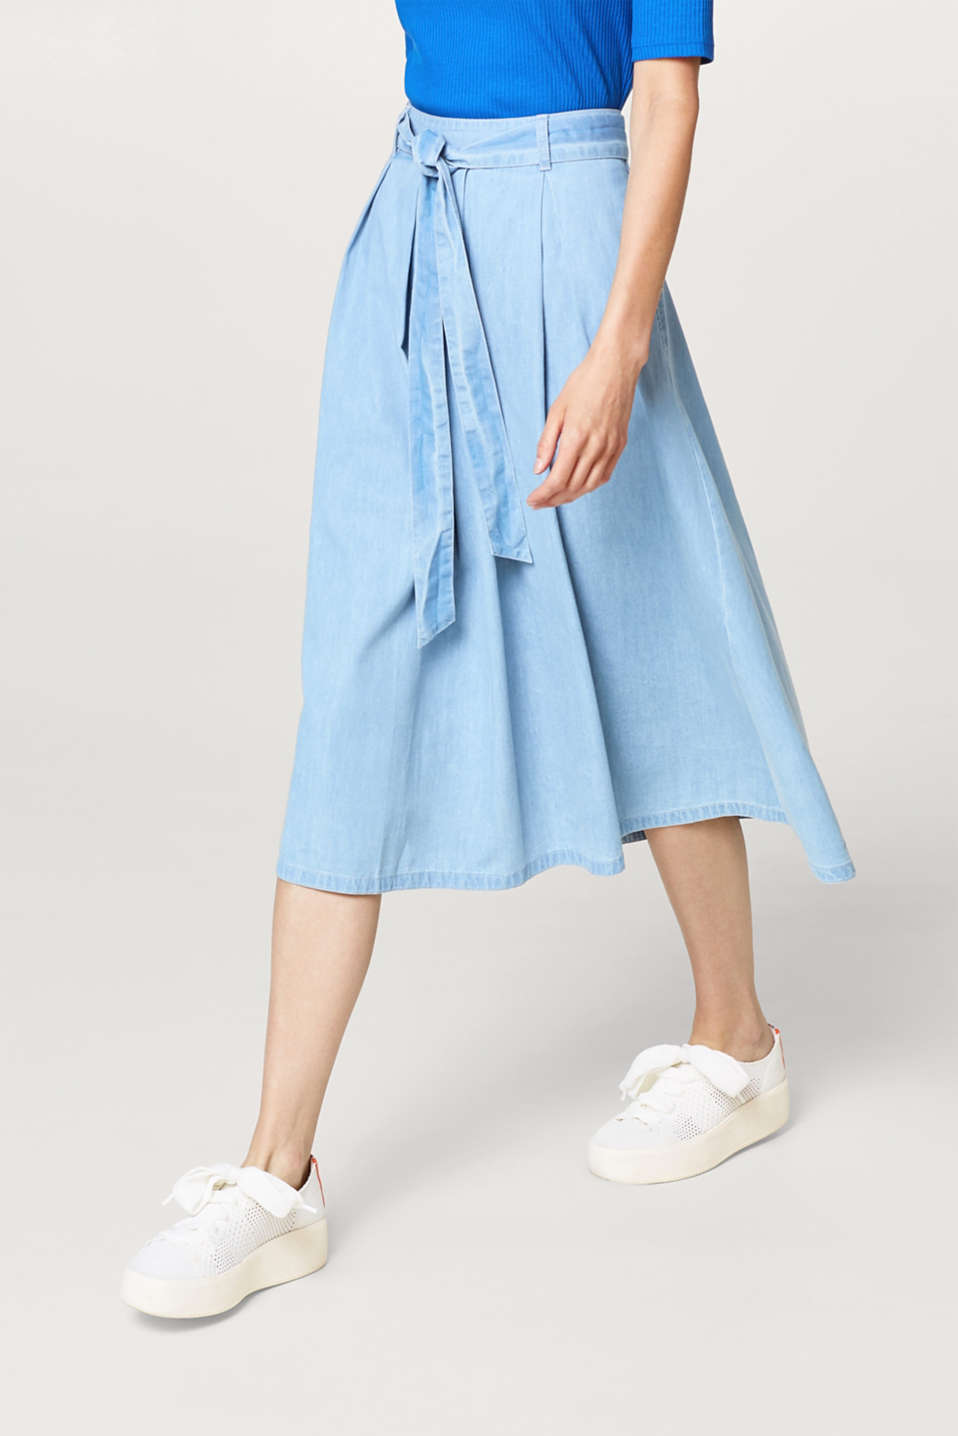 Esprit - Cotton A-line skirt in a denim look